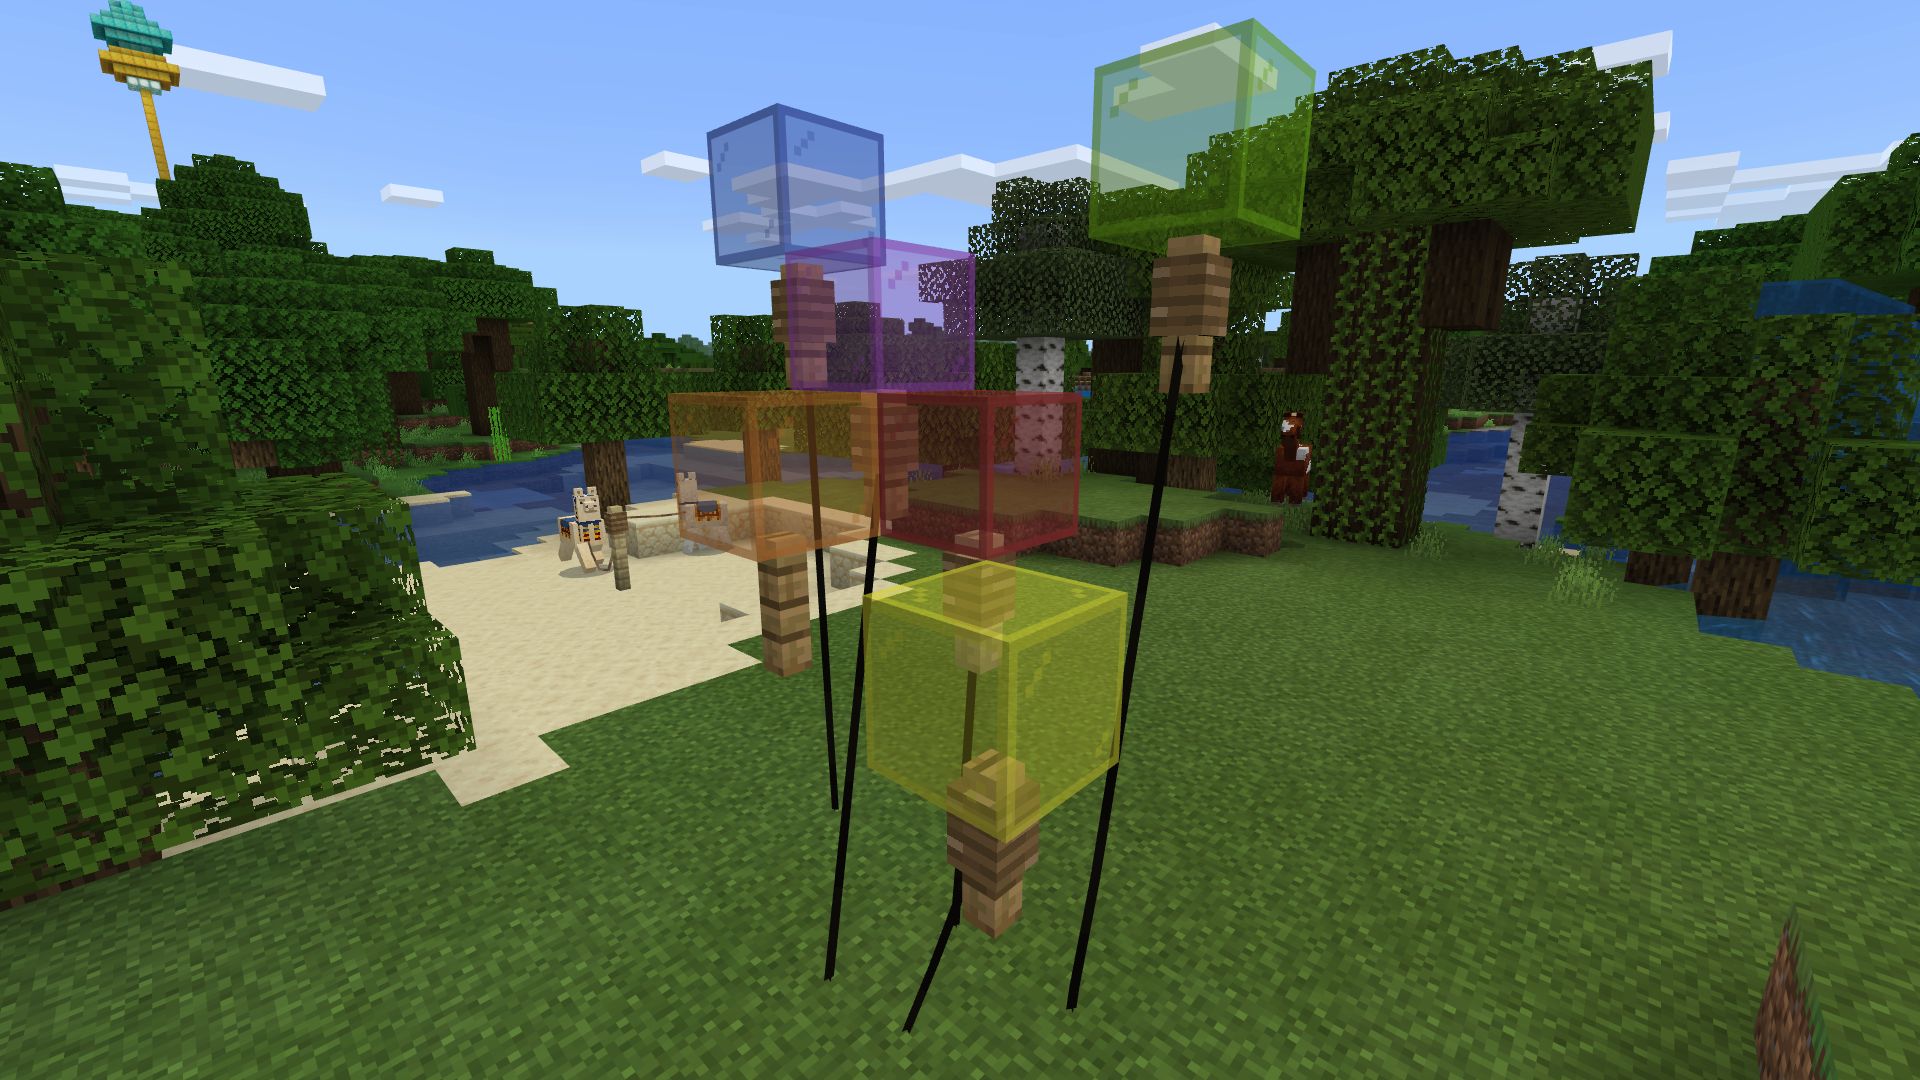 How to make a balloon in Minecraft - Quora